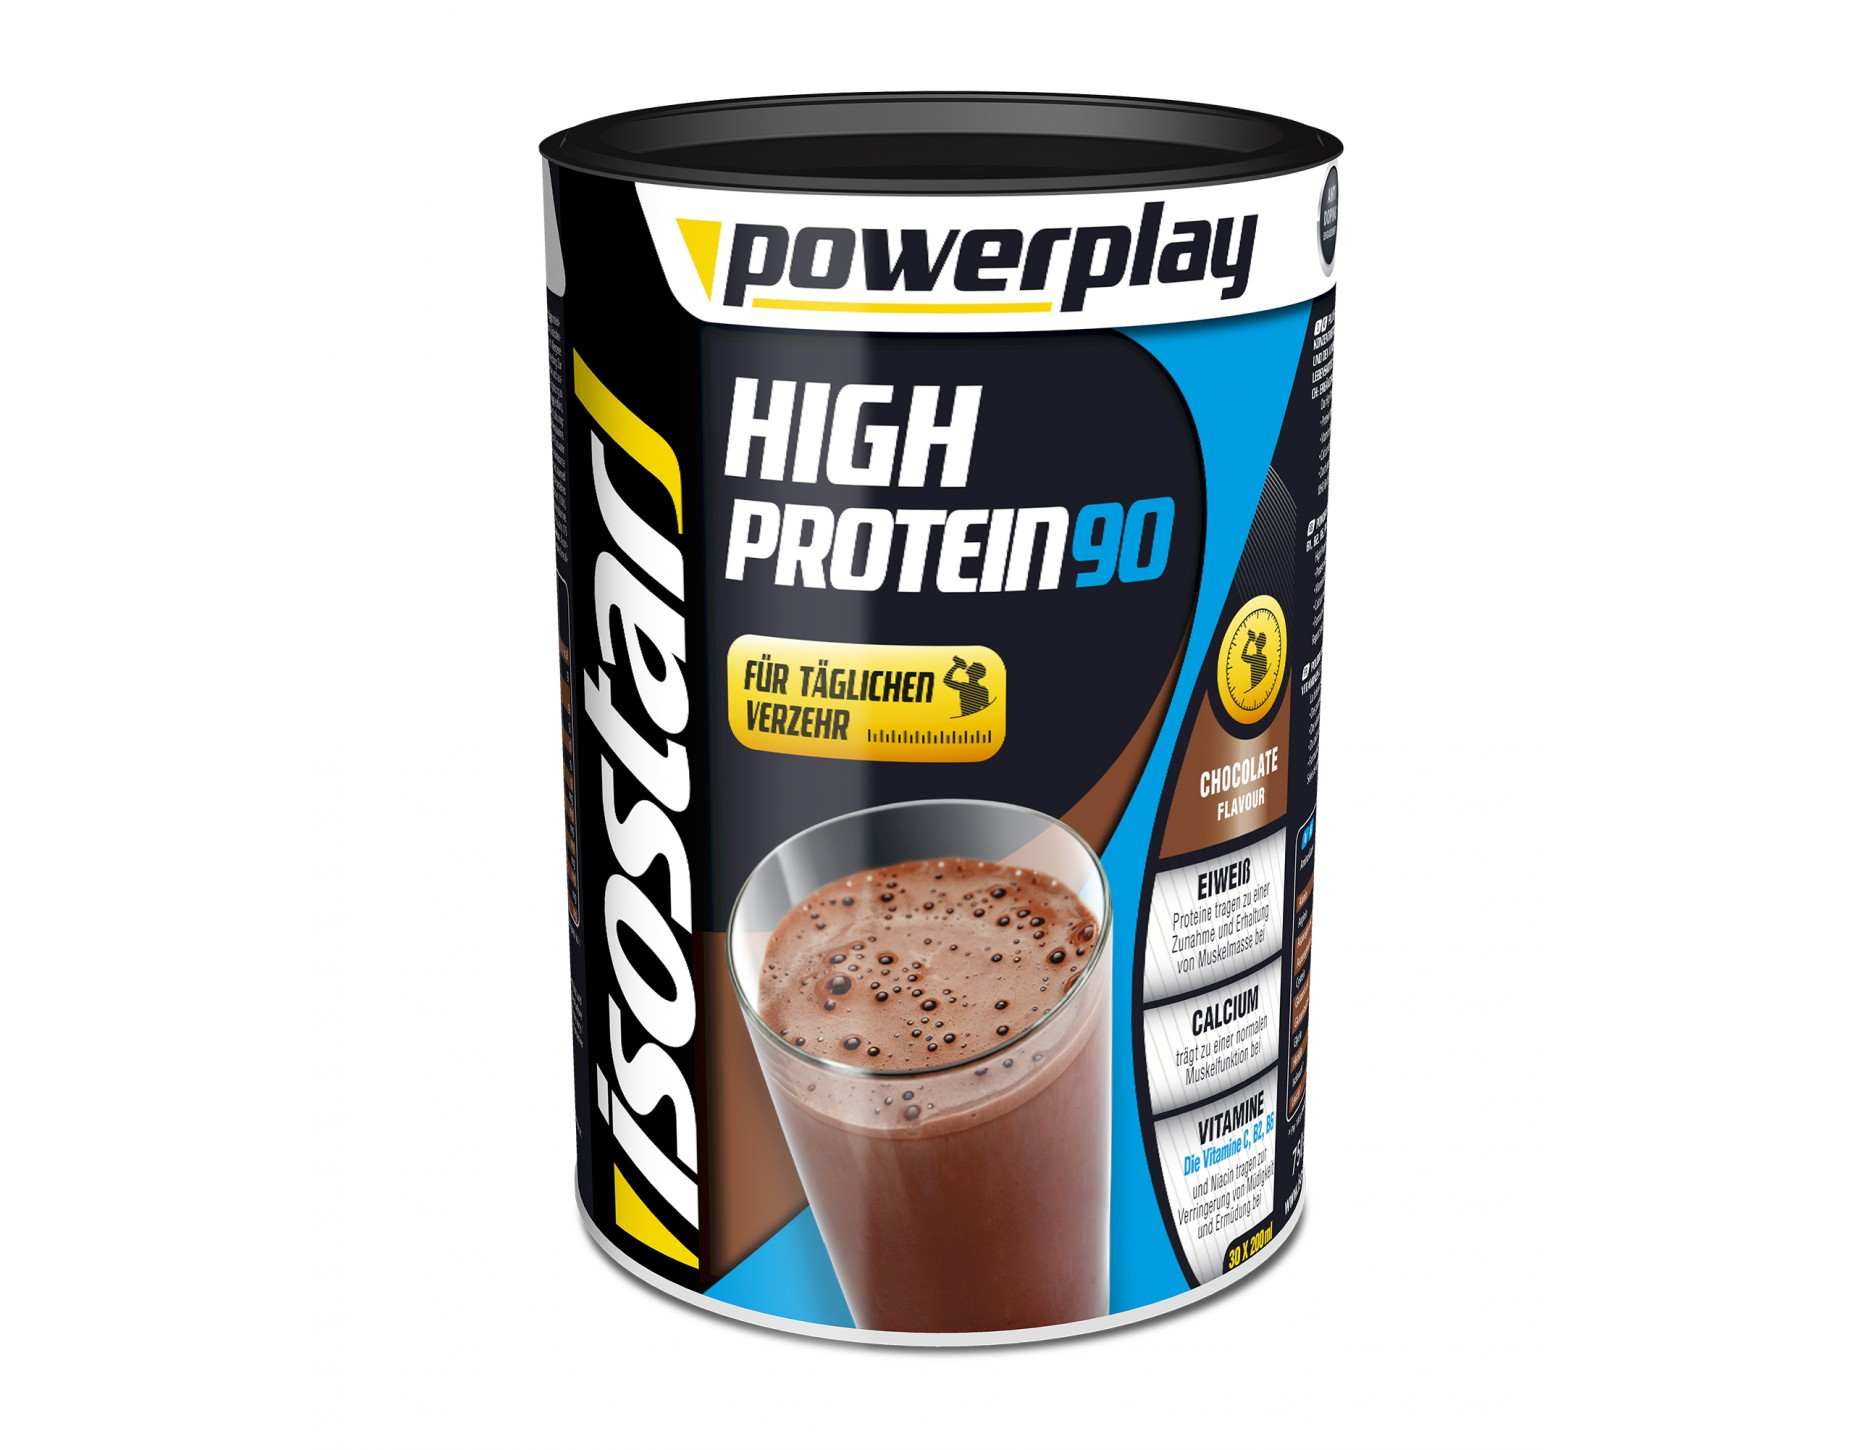 isostar high protein 90 shake everything you need. Black Bedroom Furniture Sets. Home Design Ideas